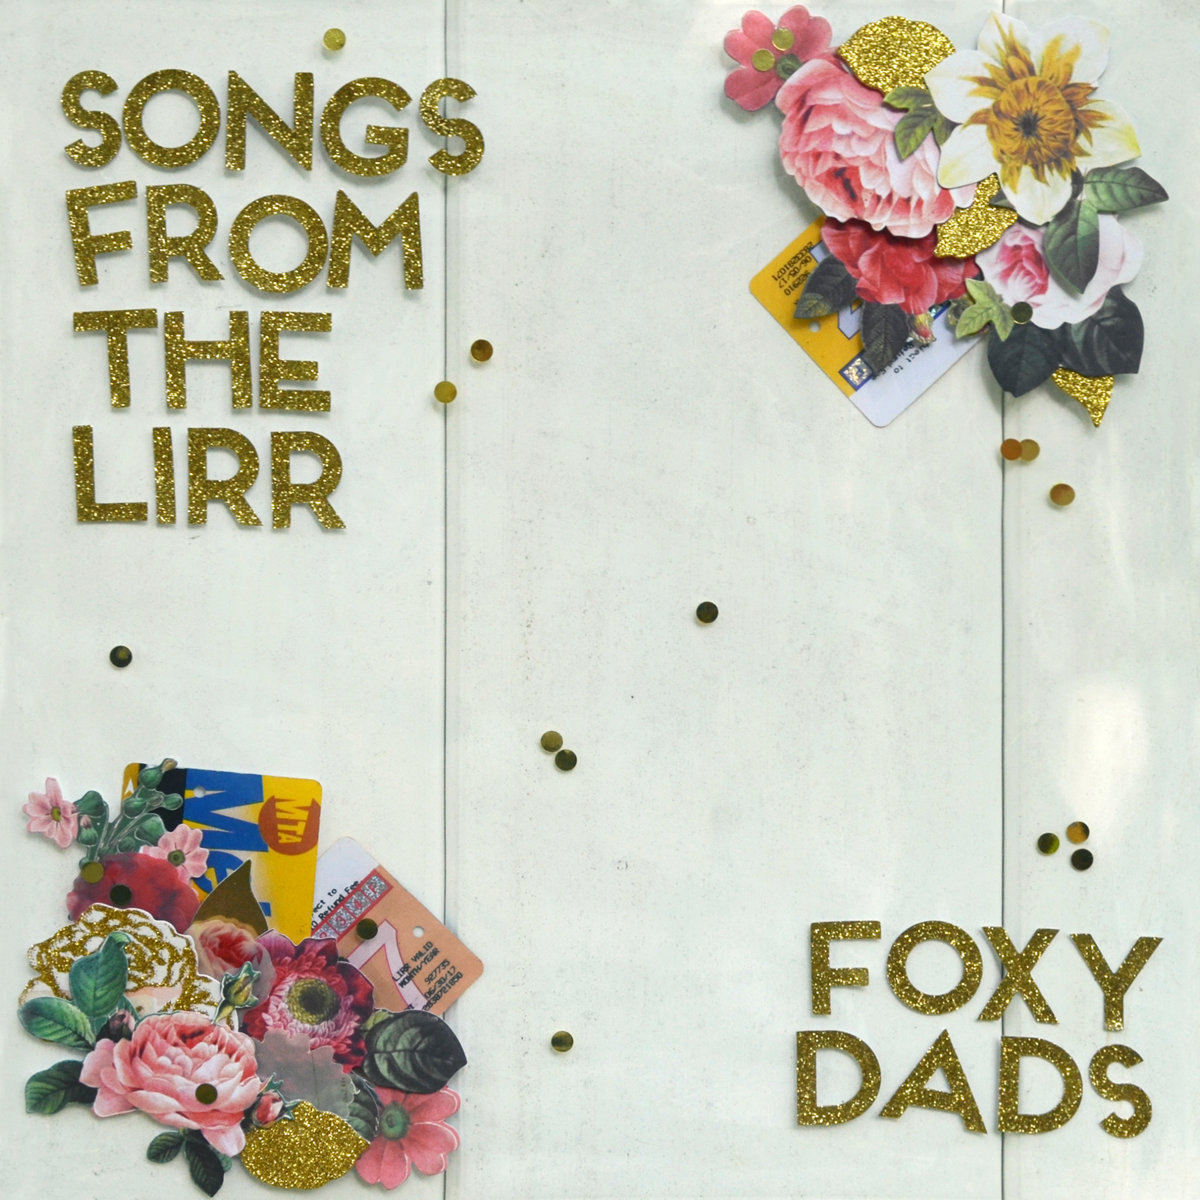 Foxy Dads - Songs from the LIRR